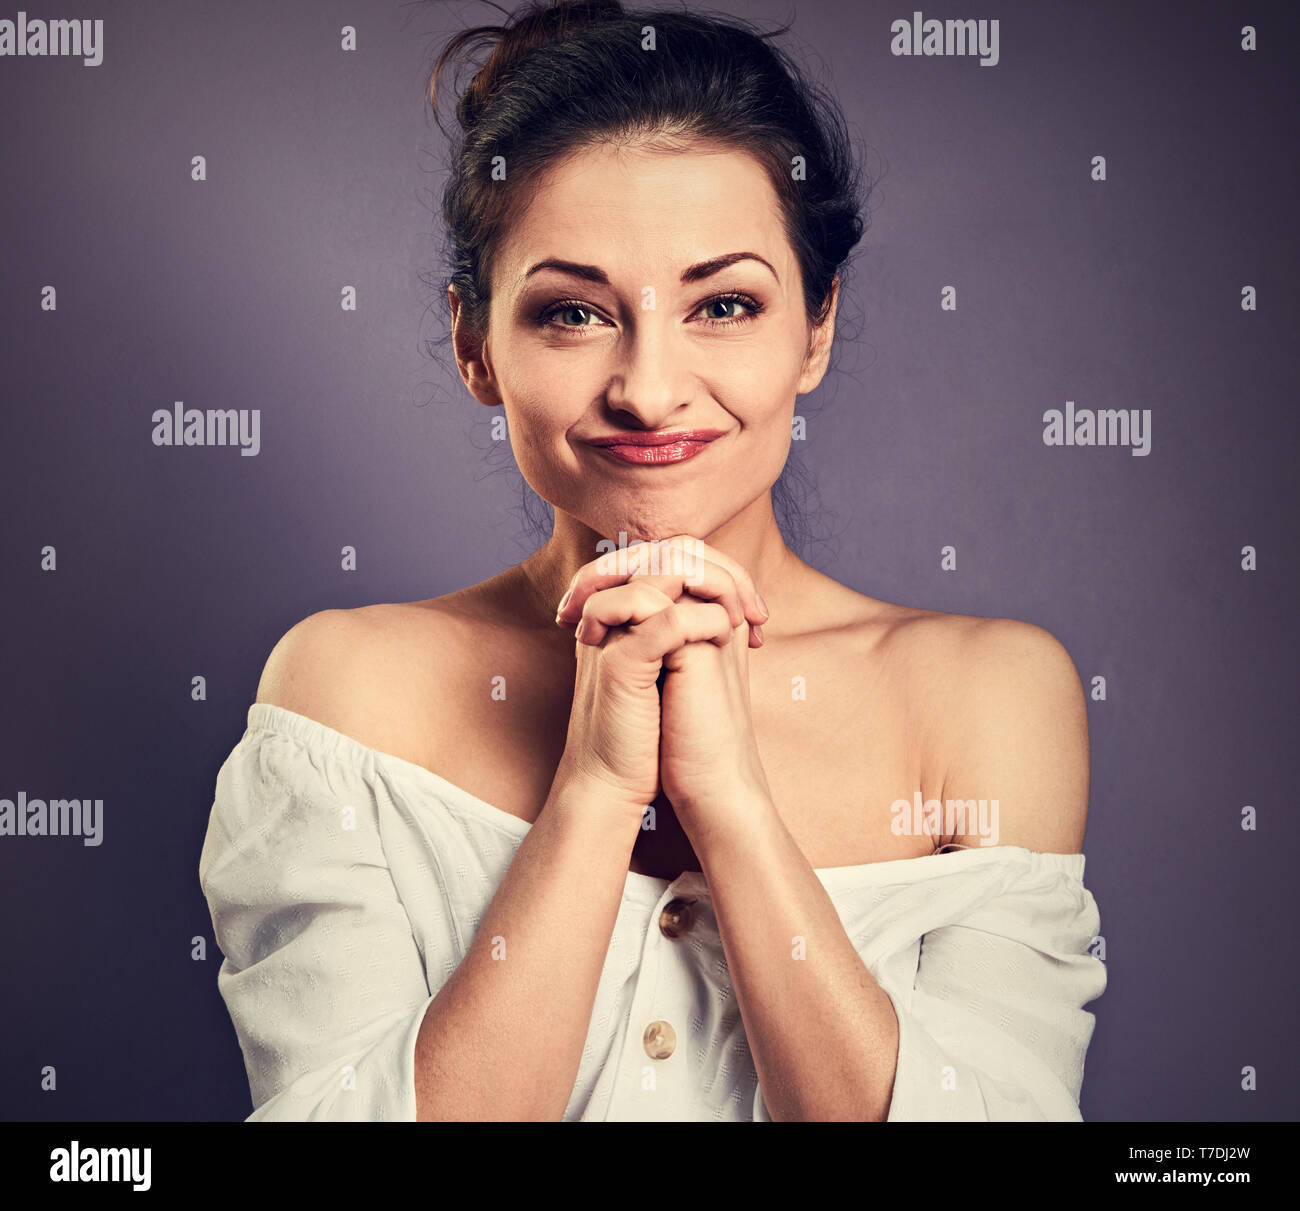 Beautiful excited fun grimacing woman in white shirt holding the hands under the face. Closeup portrait on empty purple copy space. Toned contrast vin - Stock Image